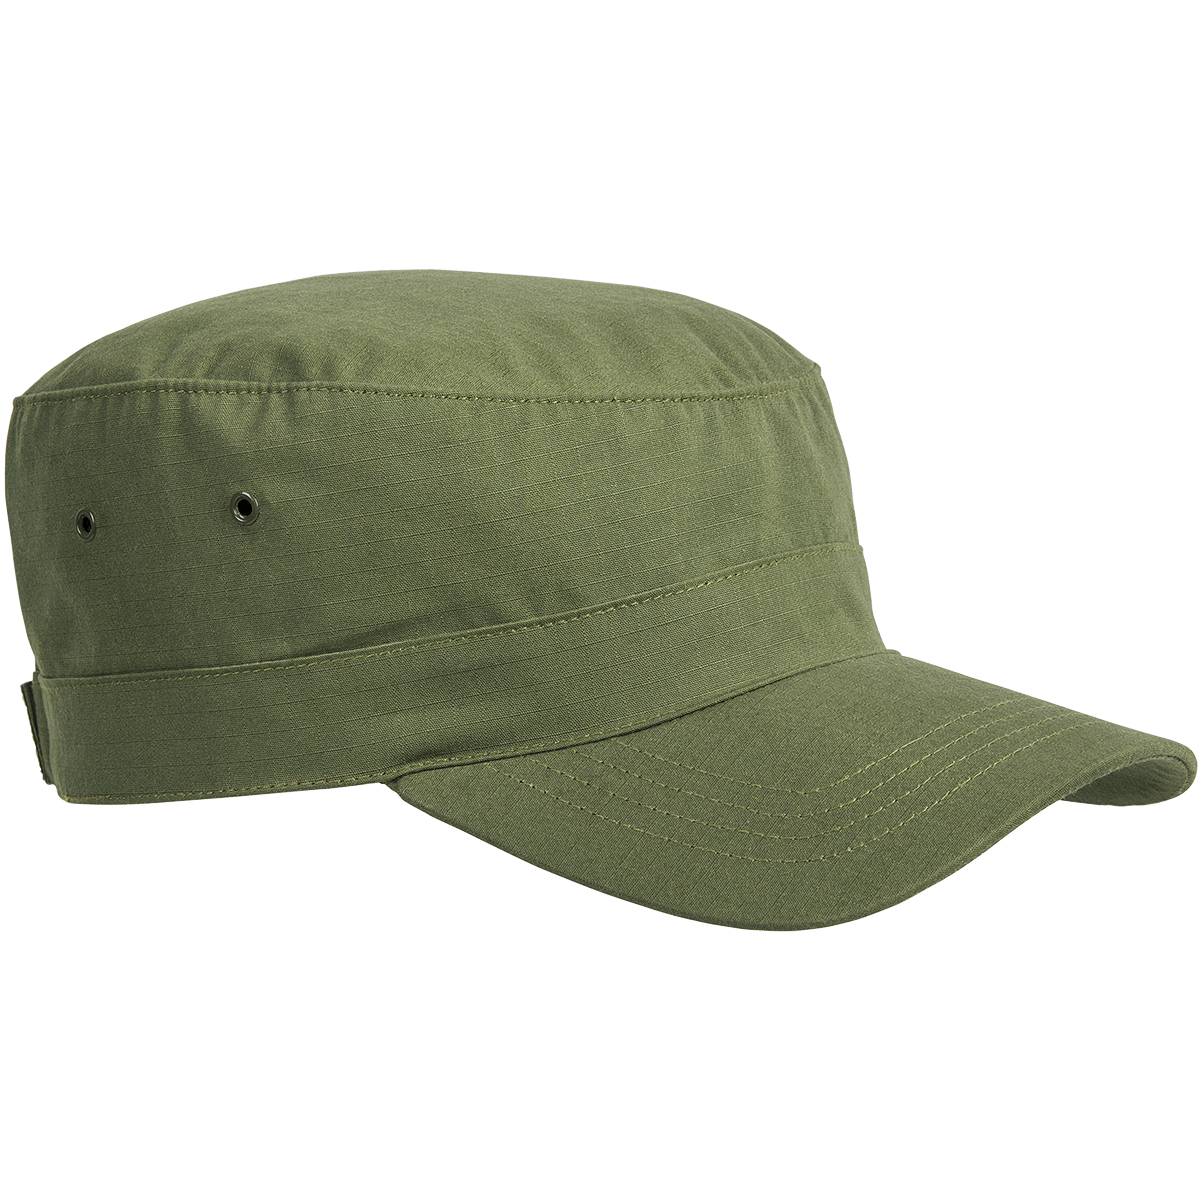 Details about Helikon Military Hunting Cap Tactical Patrol Hat Adjustable  Ripstop Olive Green 0a11ea46cfe